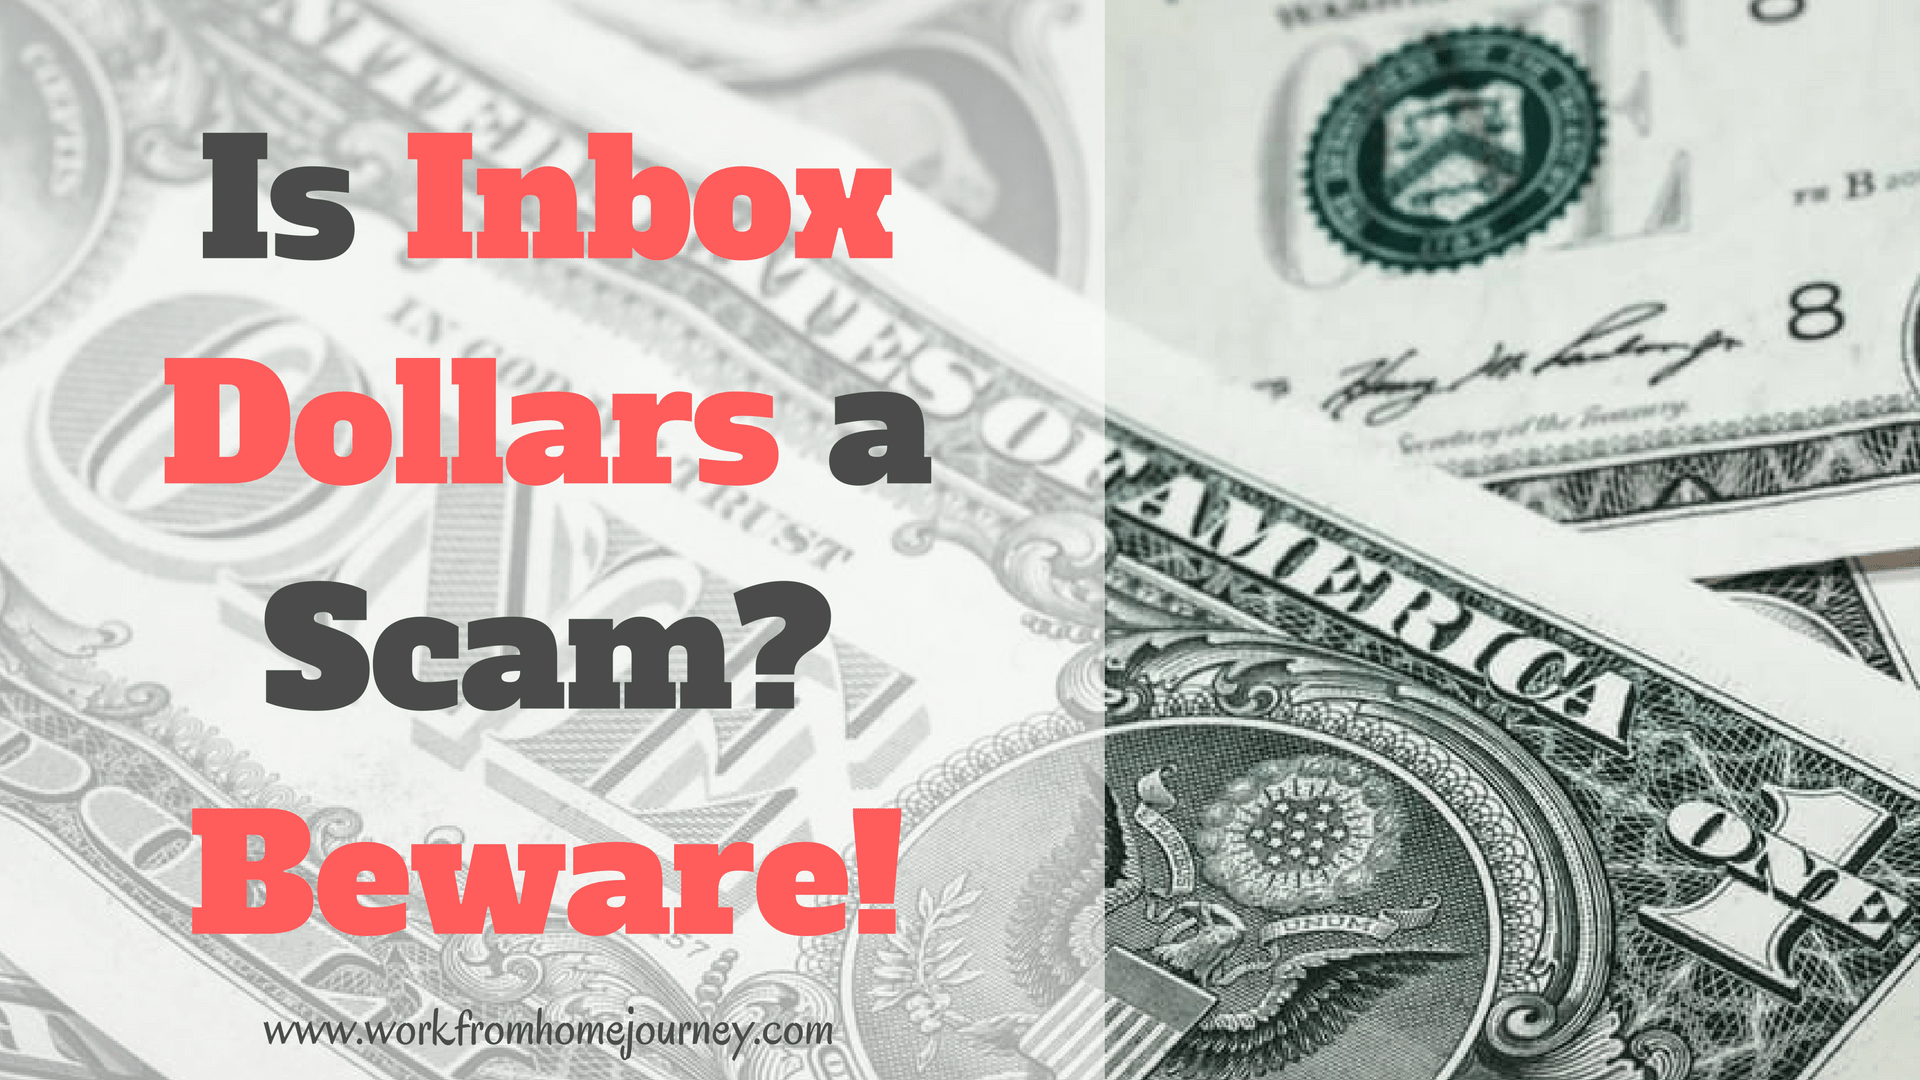 Inbox Dollars Review: Legit or Shocking Scam? [Updated 2018]